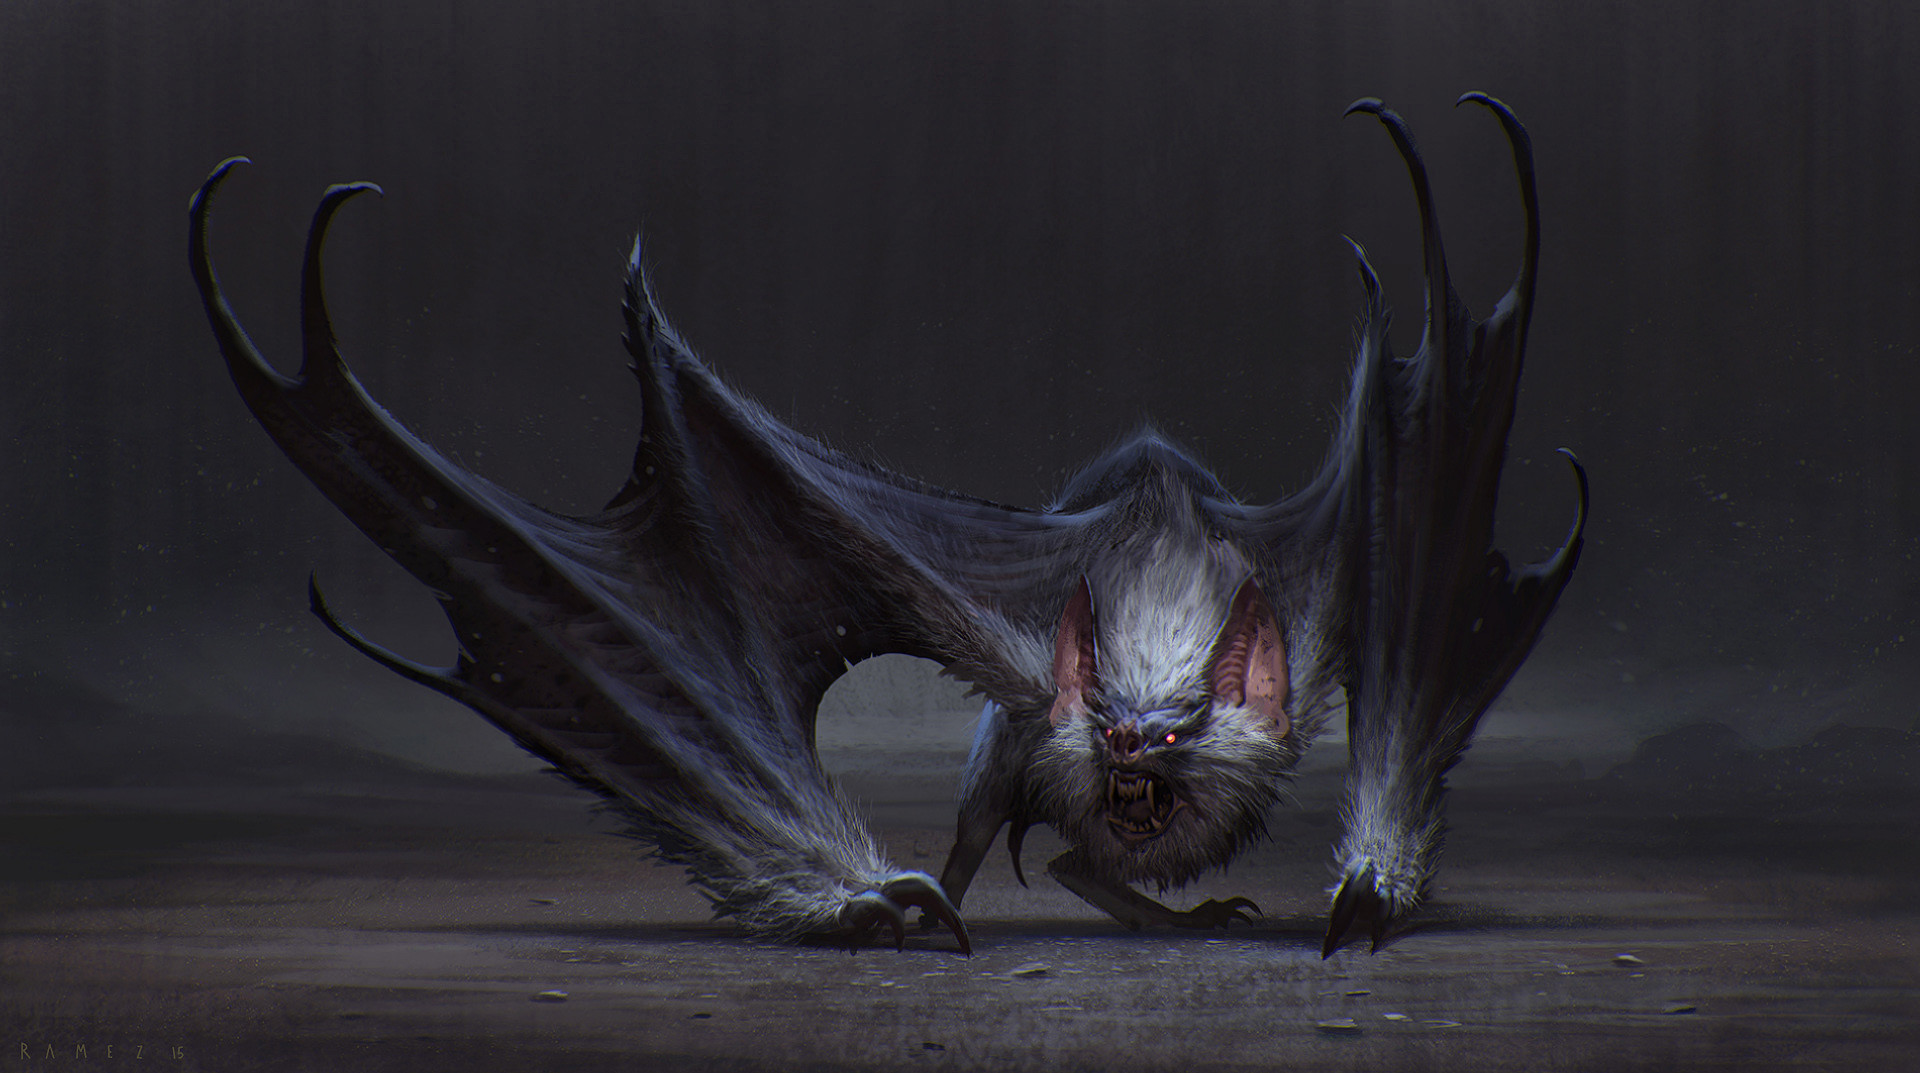 https://cdnb.artstation.com/p/assets/images/images/001/305/255/large/saeed-ramez-bat-final2.jpg?1444049871